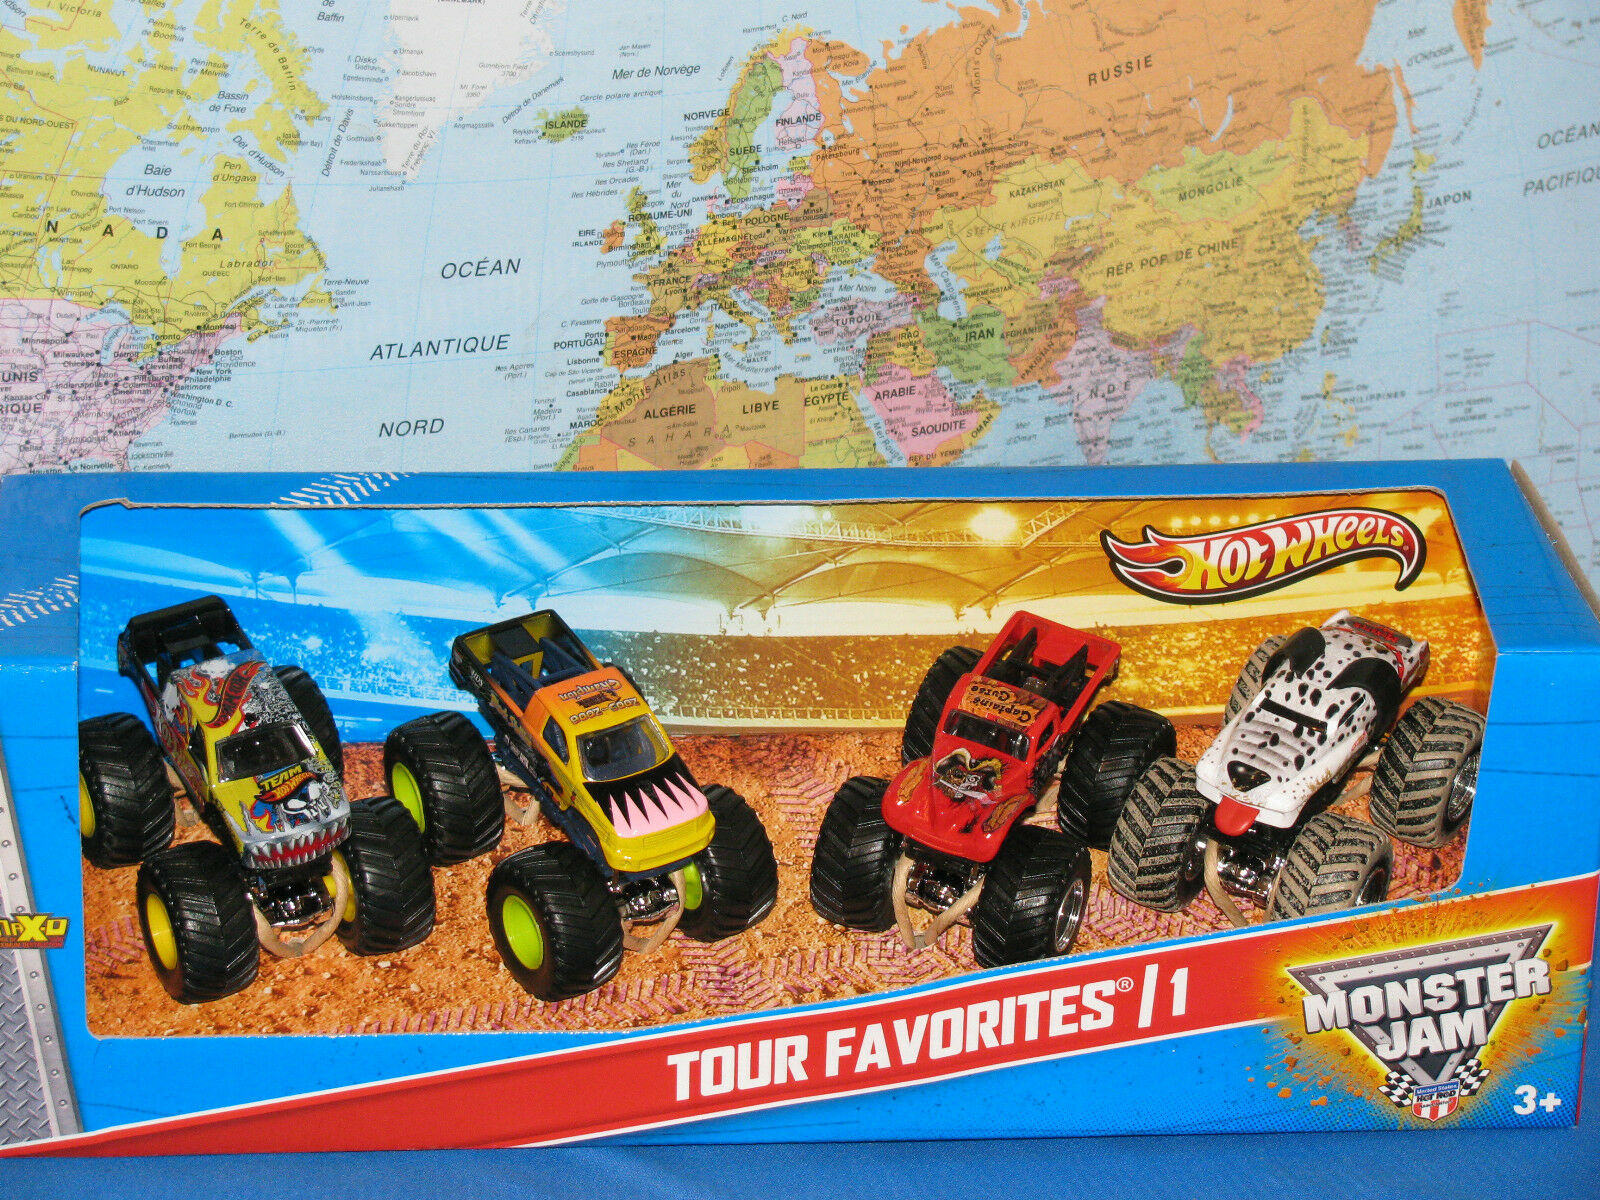 Hot Wheels Confiture de Monstre Camions Paquet de 4 Tour Favoris  1 Dalmatien